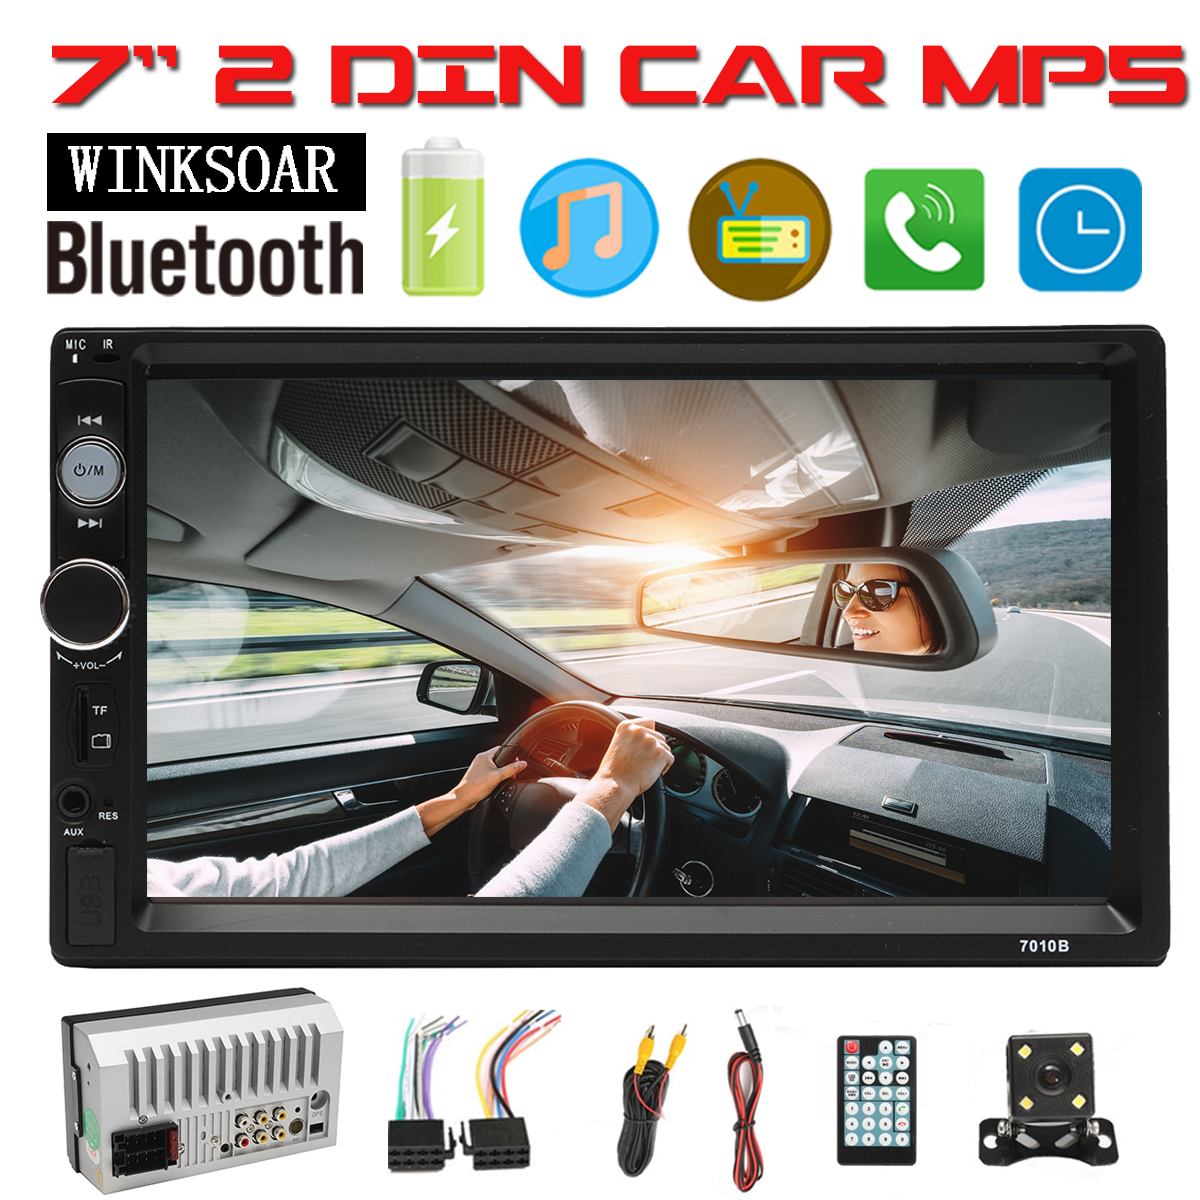 Dual Electronics 7 inch Multimedia Touch Screen Double Din Car Stereo with Built-In Bluetooth MP5 Player AUX/USB/SD Ports with Rear View Camera